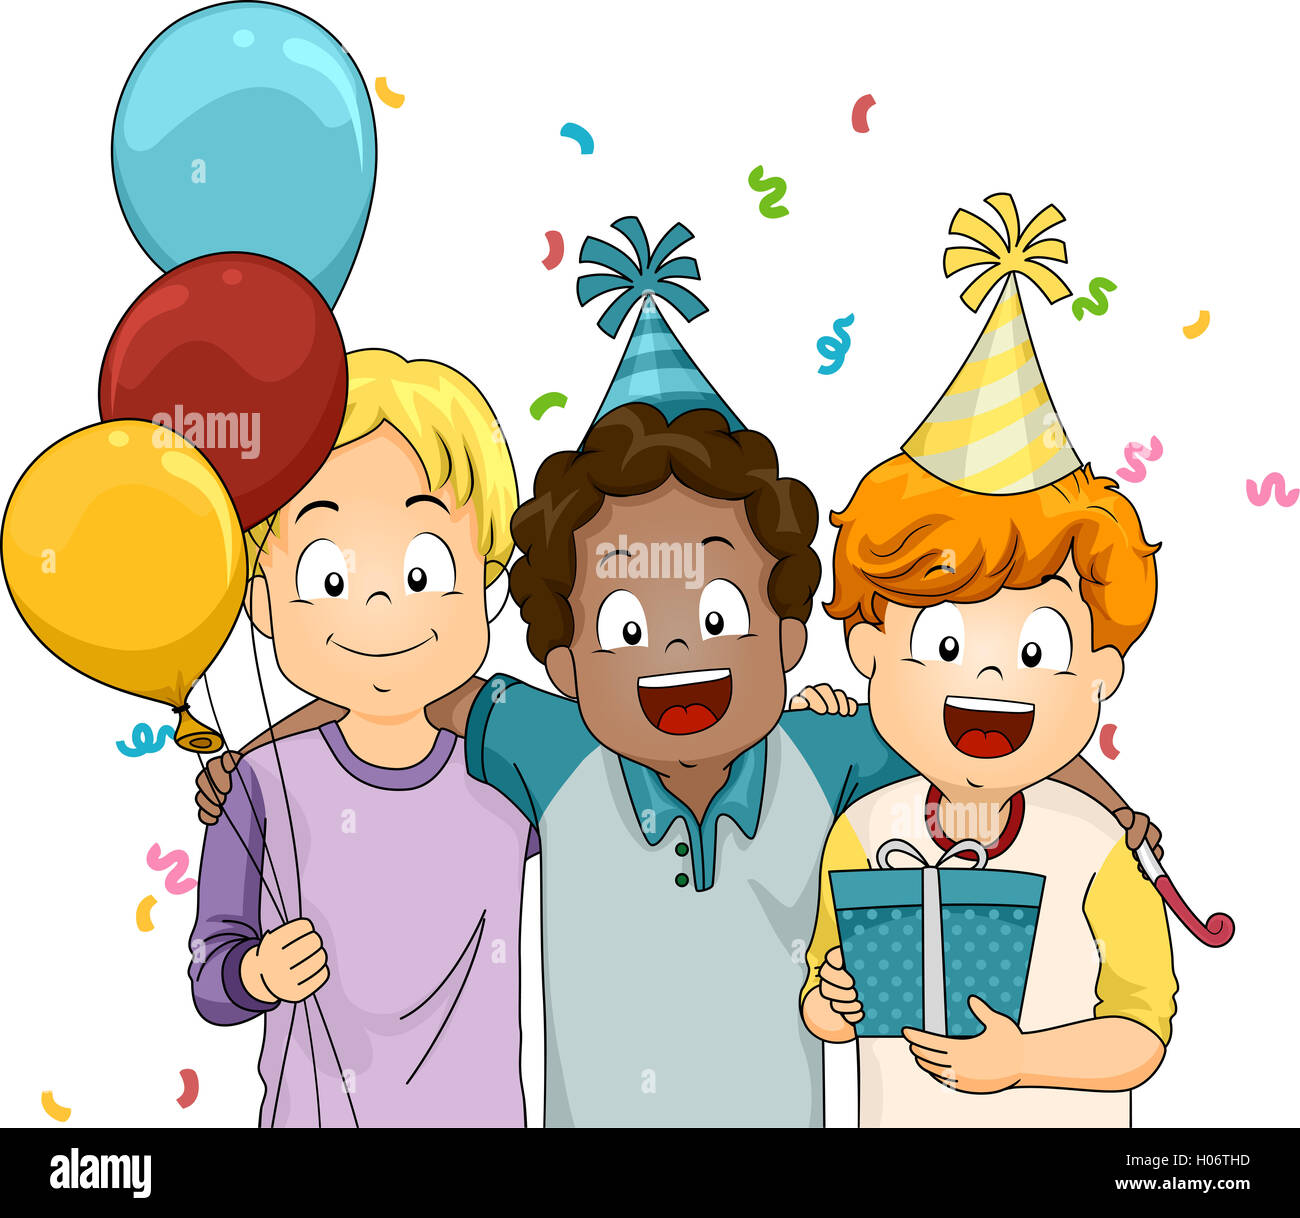 Illustration Of Boys Giving A Friend Surprise Birthday Gift